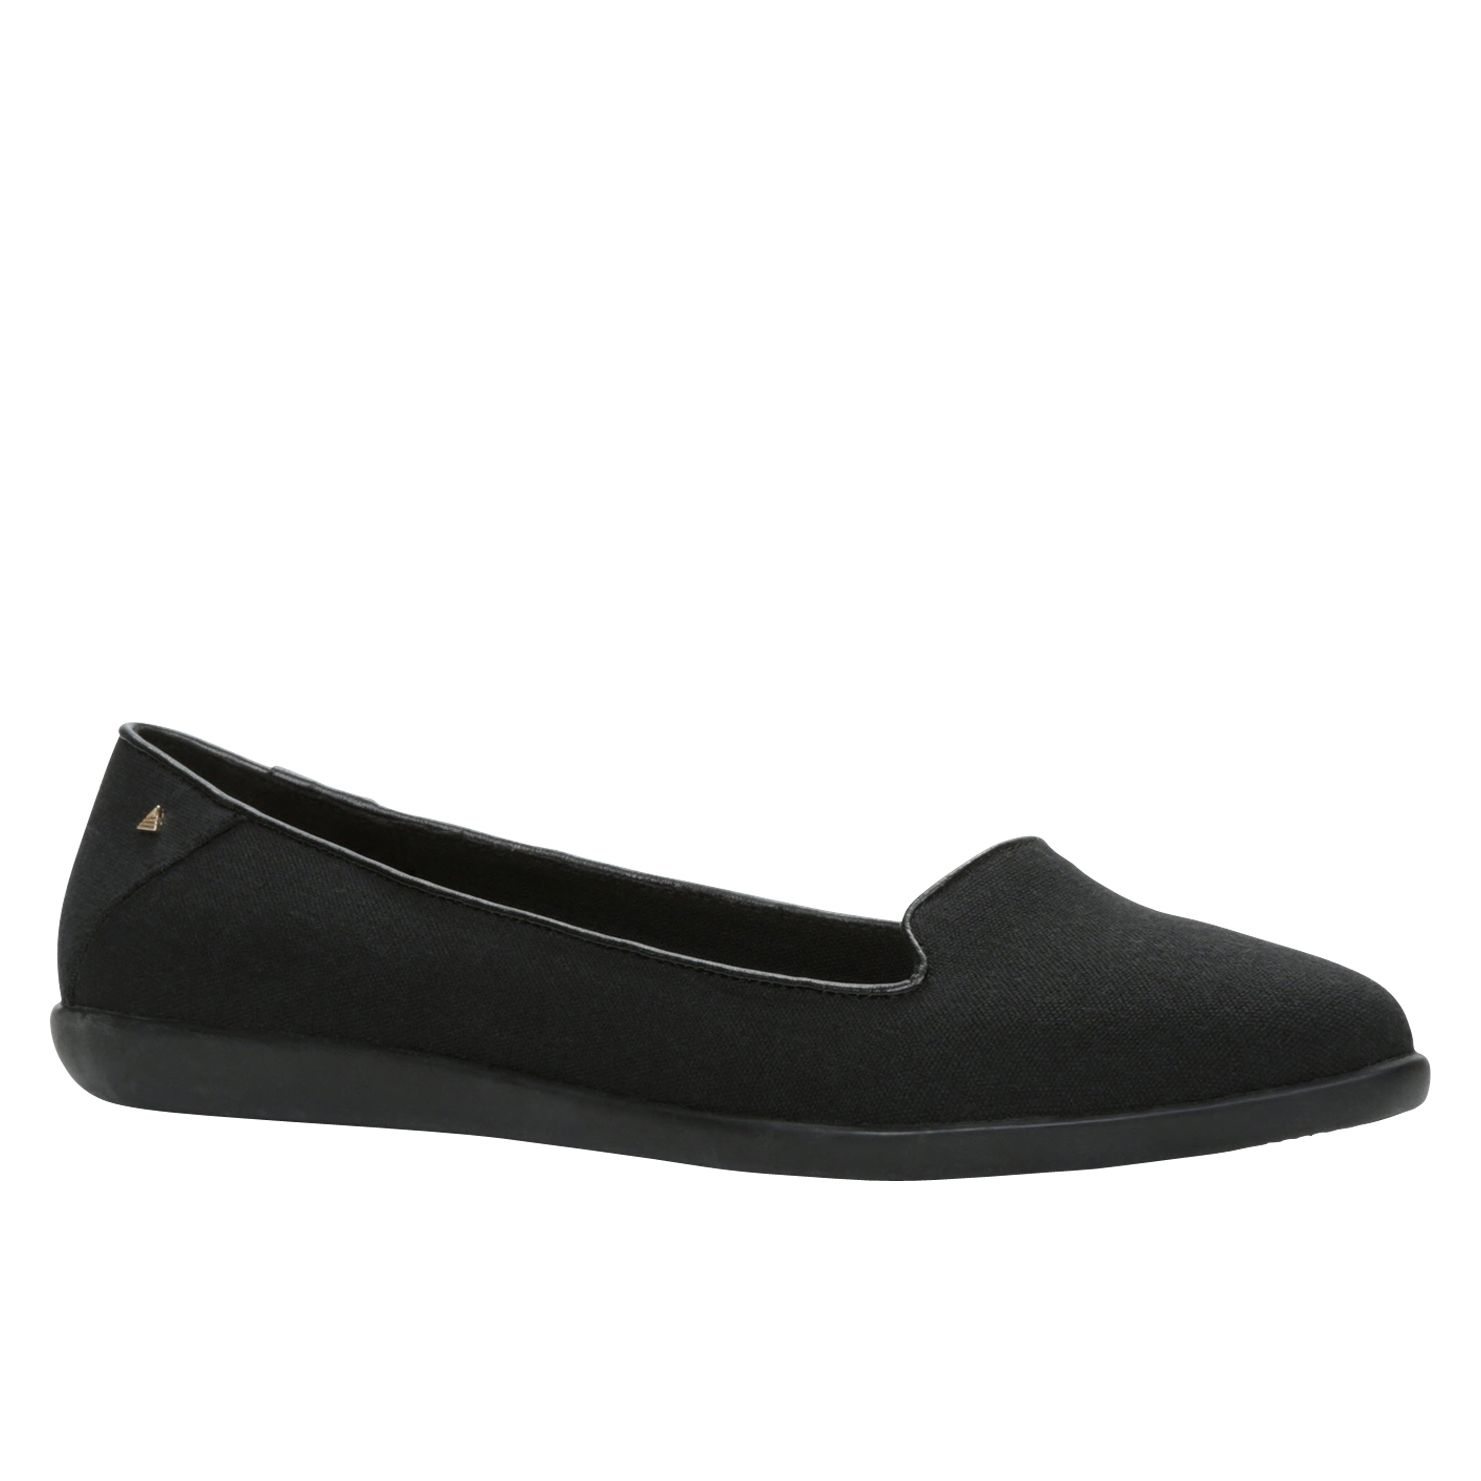 Gwaelclya almond toe slip on shoes